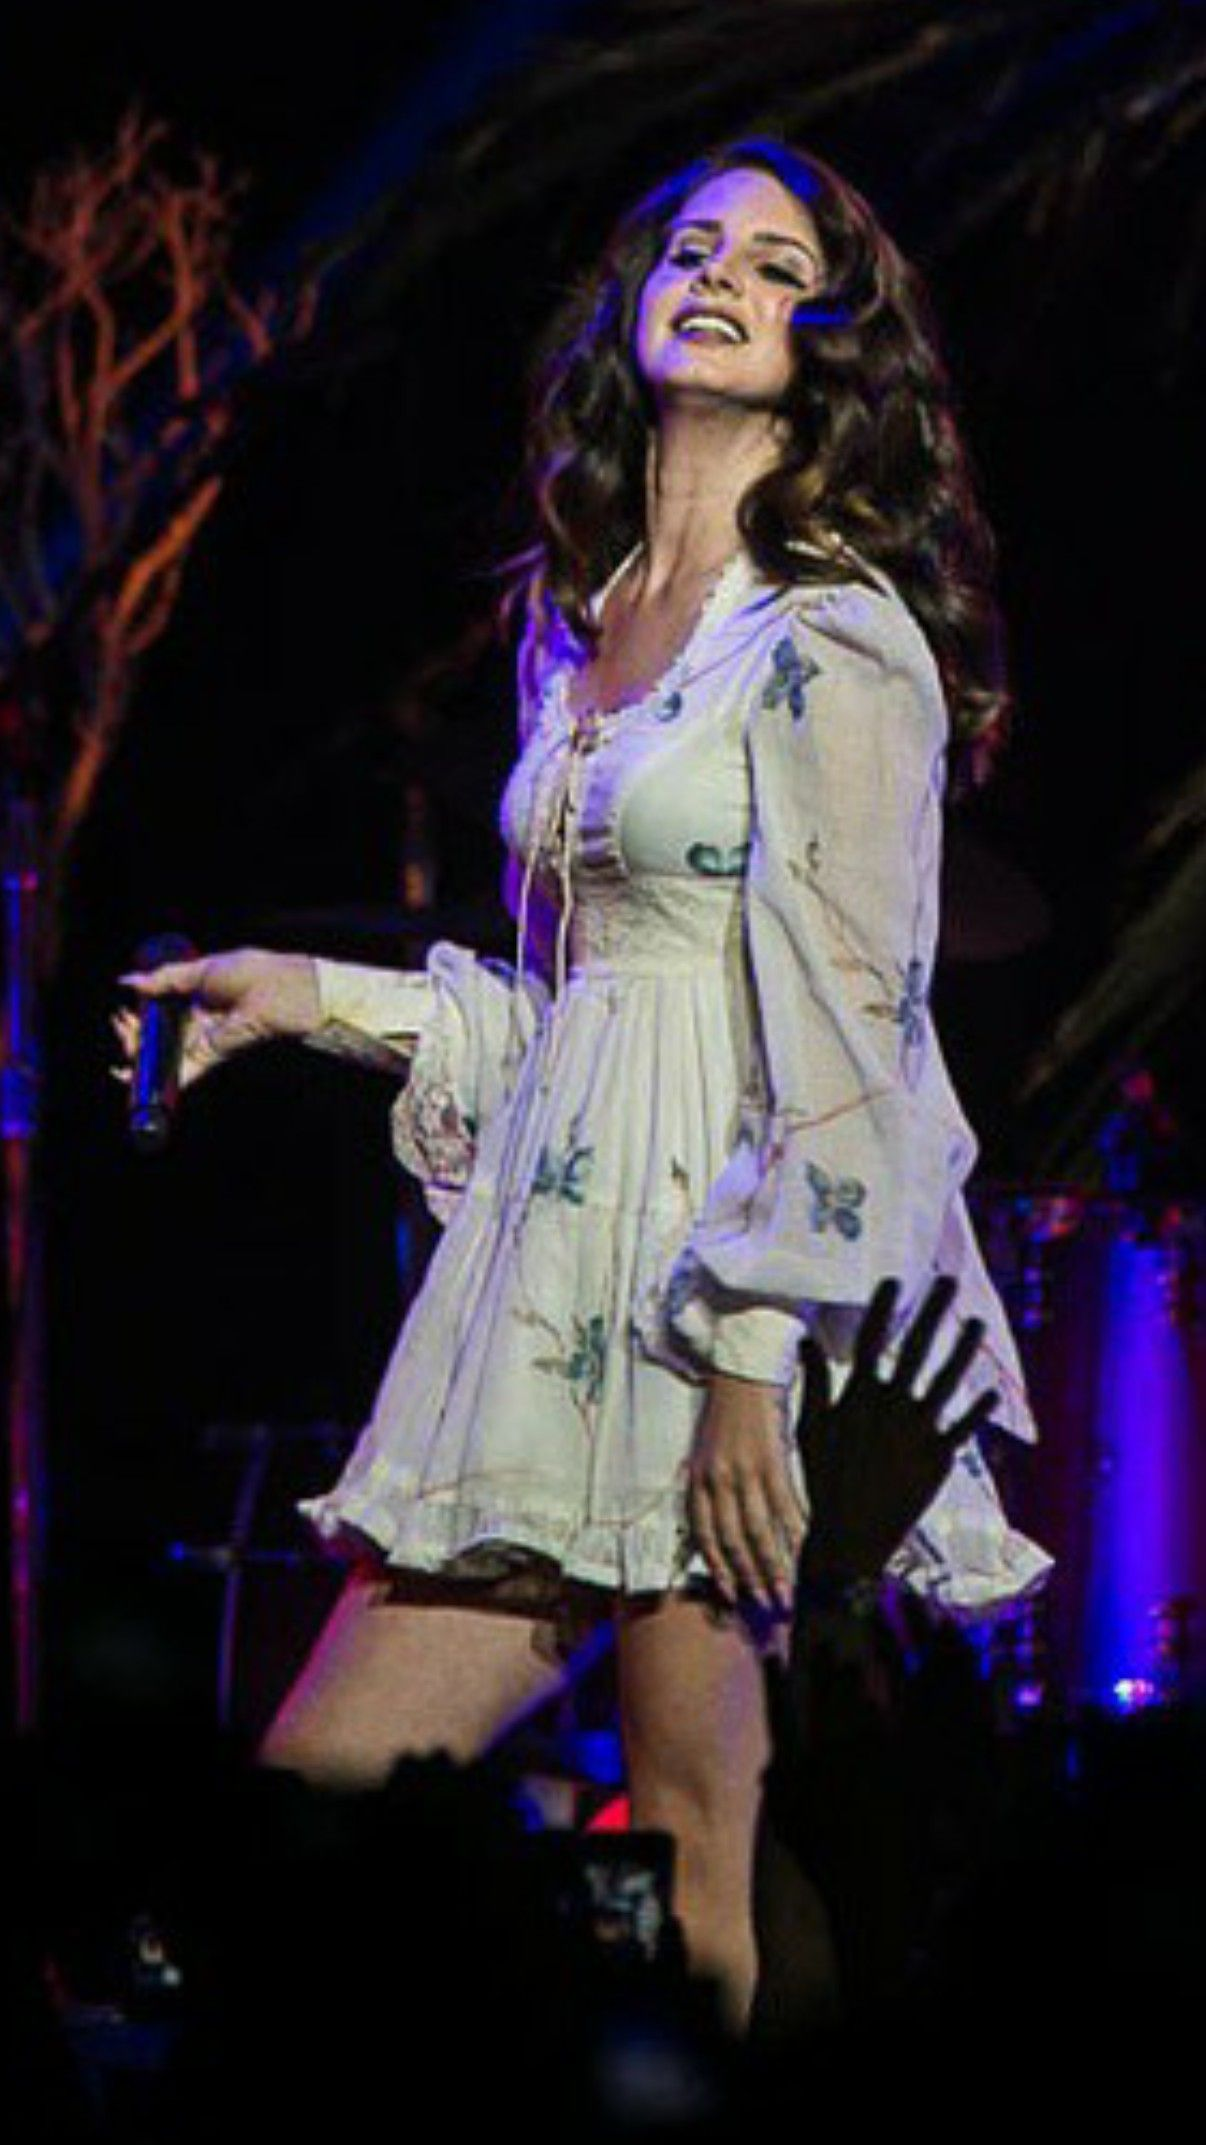 Pin by Lauren on Lana del rey | Best fashion photographers, Her style, Lily pulitzer dress